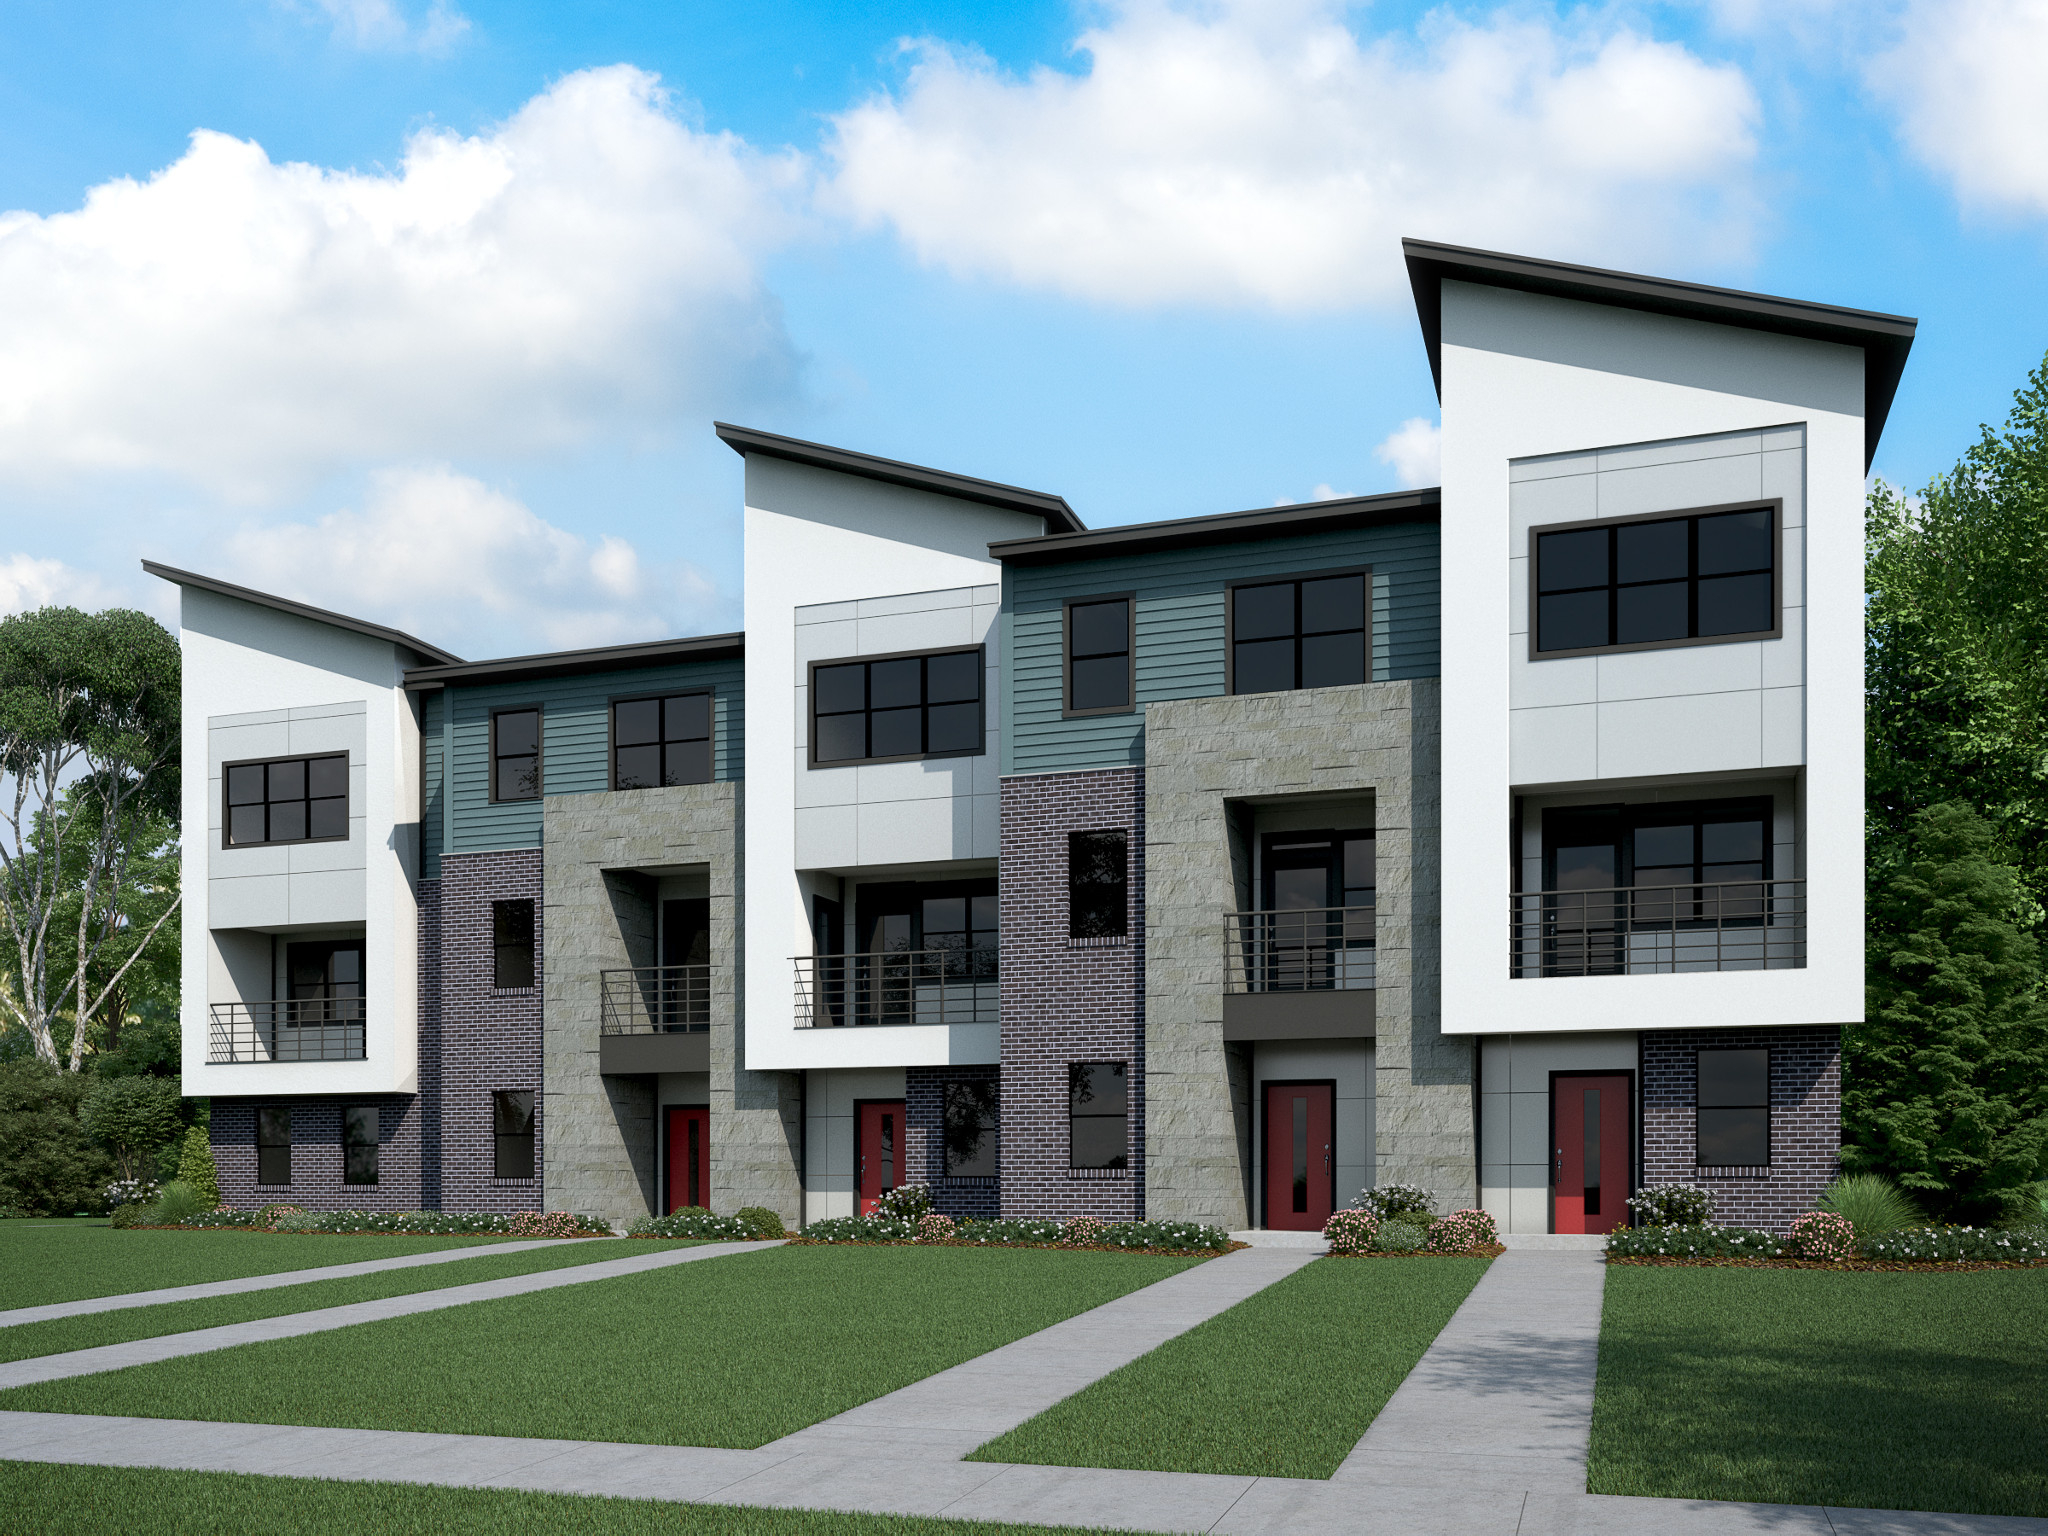 36th & Holt Townhome Exterior